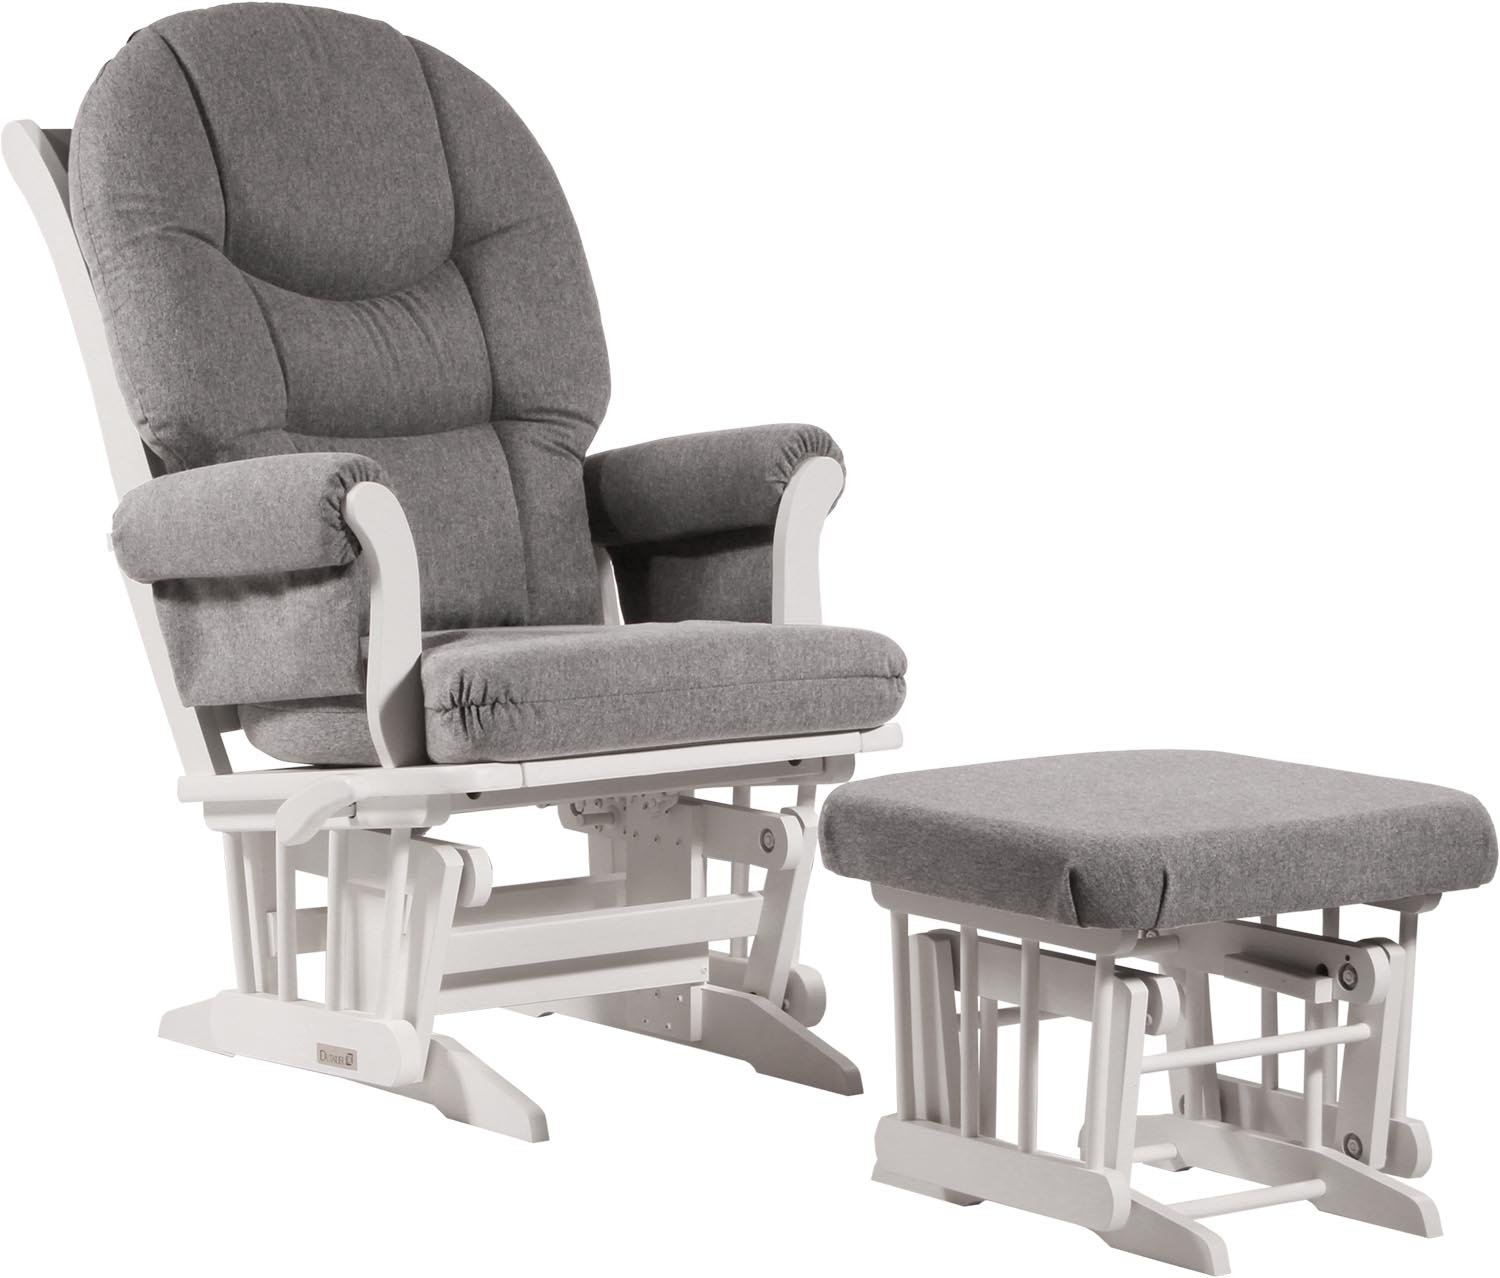 Dutailier Sleigh 0398 Glider Multiposition-Lock Recline with Nursing Ottoman Included by Dutailier